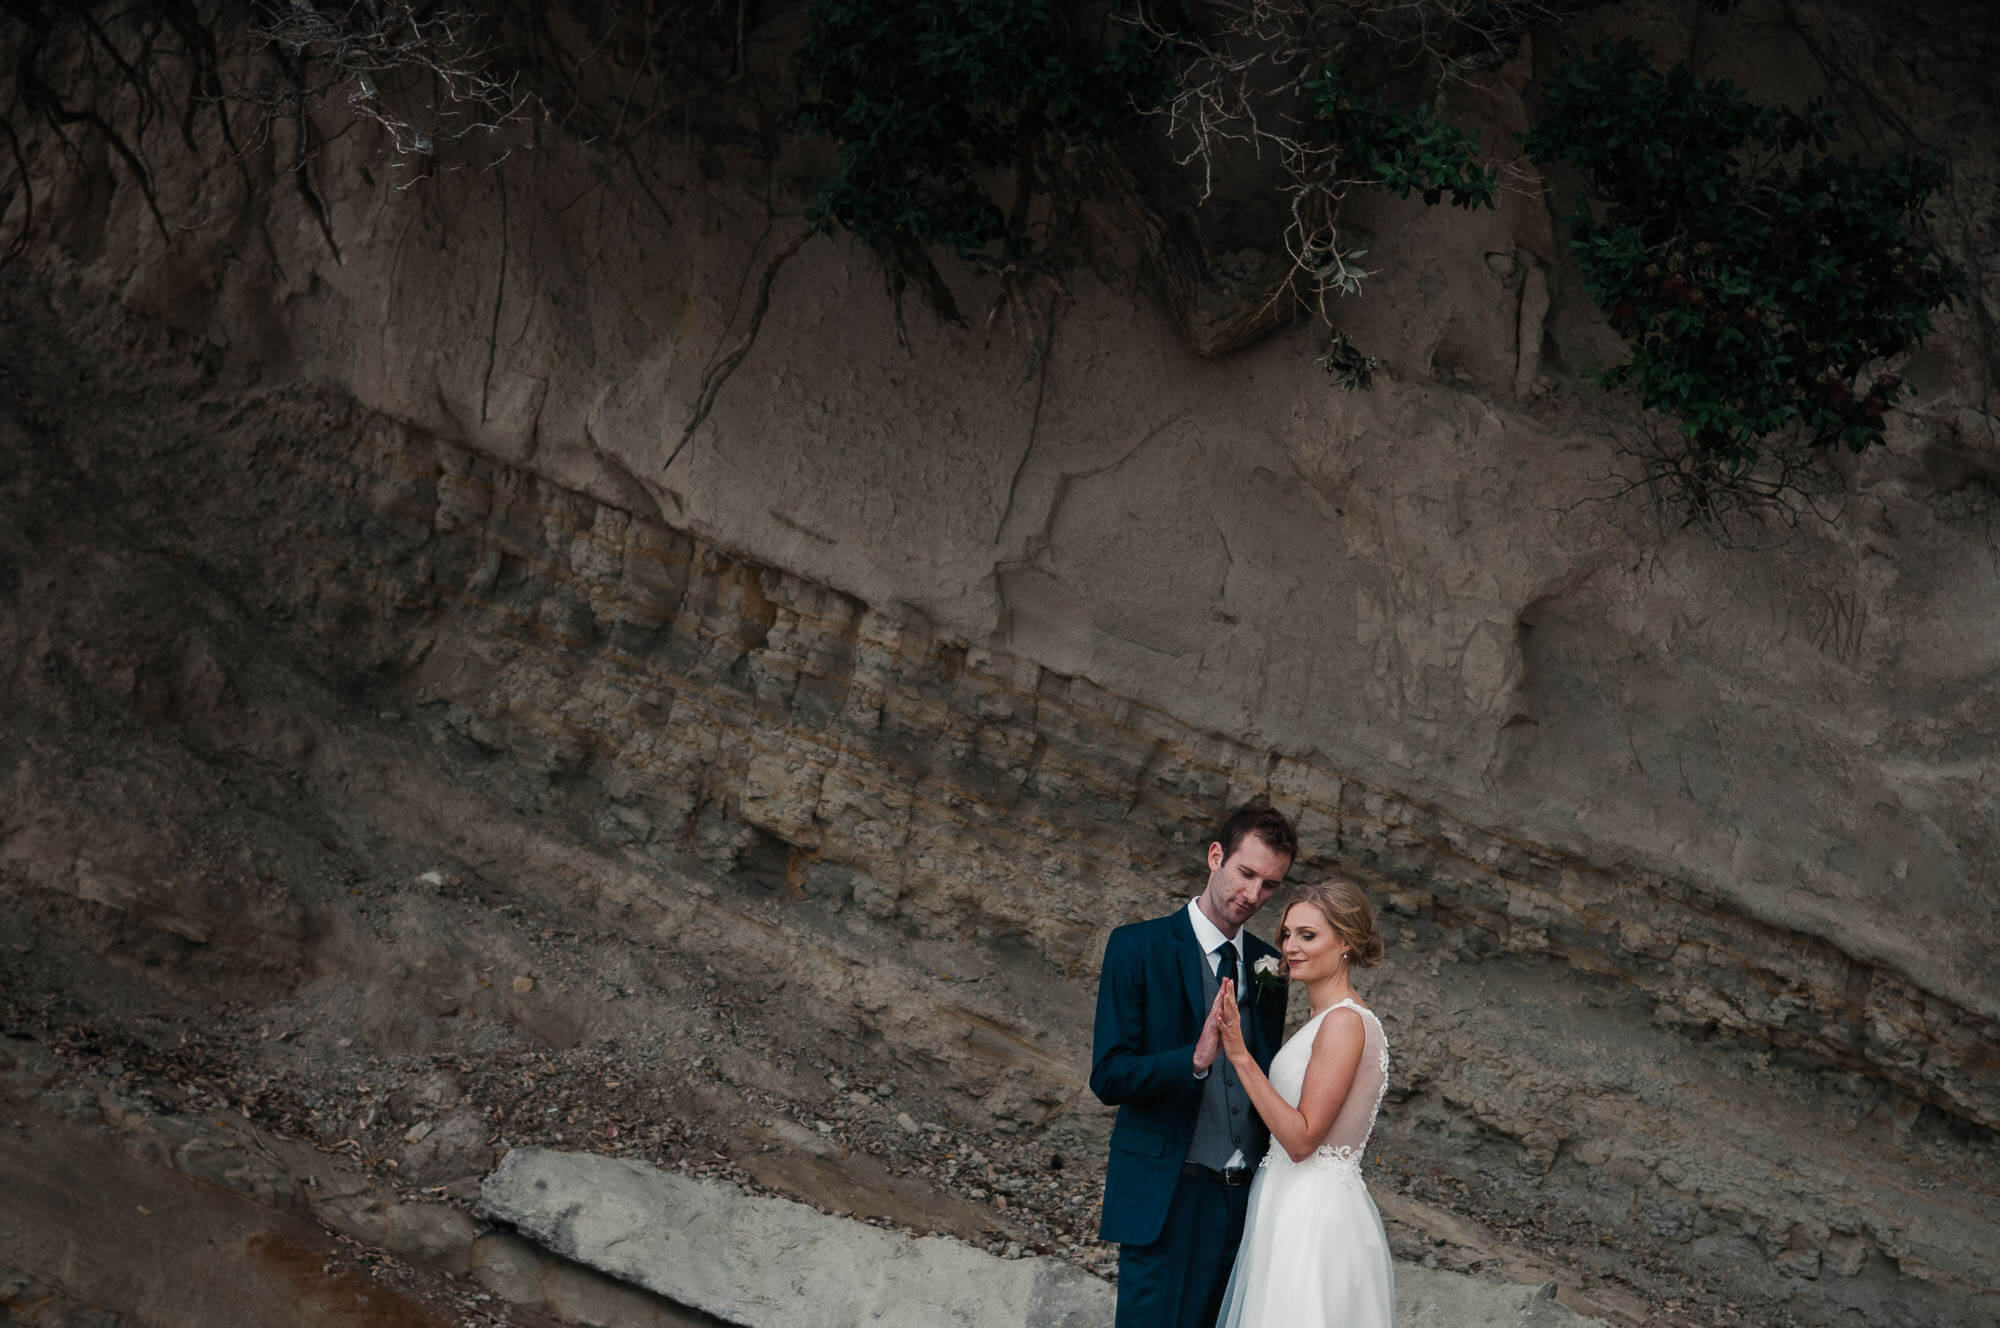 bride-and-groom-holding-hands-with-dramatic-cliff-in-background.jpg